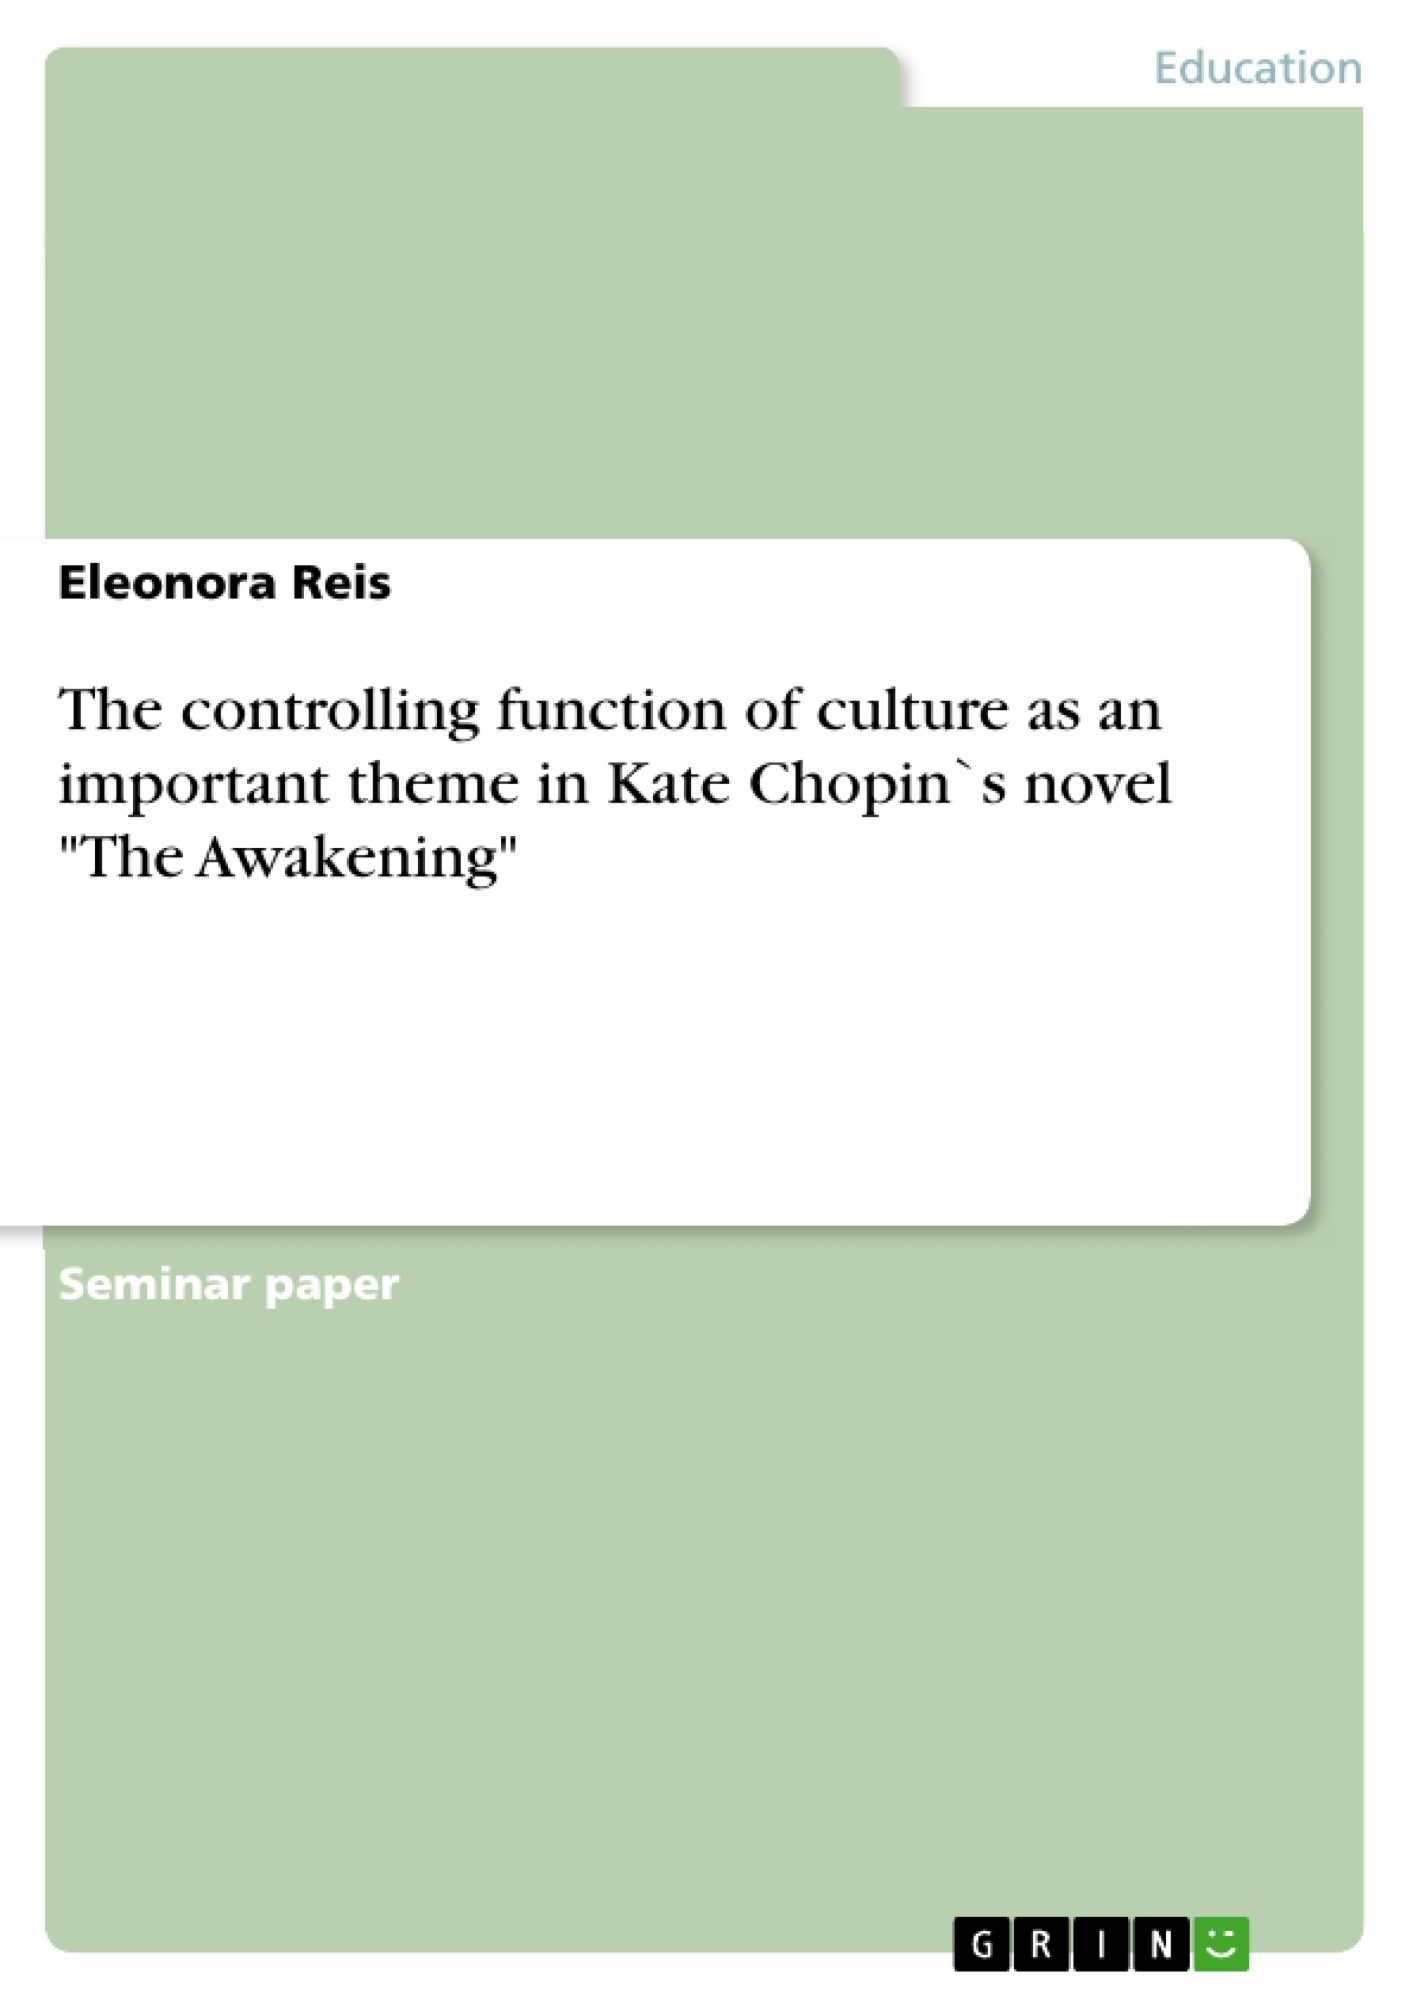 kate chopins the awakening essay Essays & papers kate chopin's the awakening and essay sample on kate kate chopin's the awakening and desiree's baby -- a comparative literary analysis.